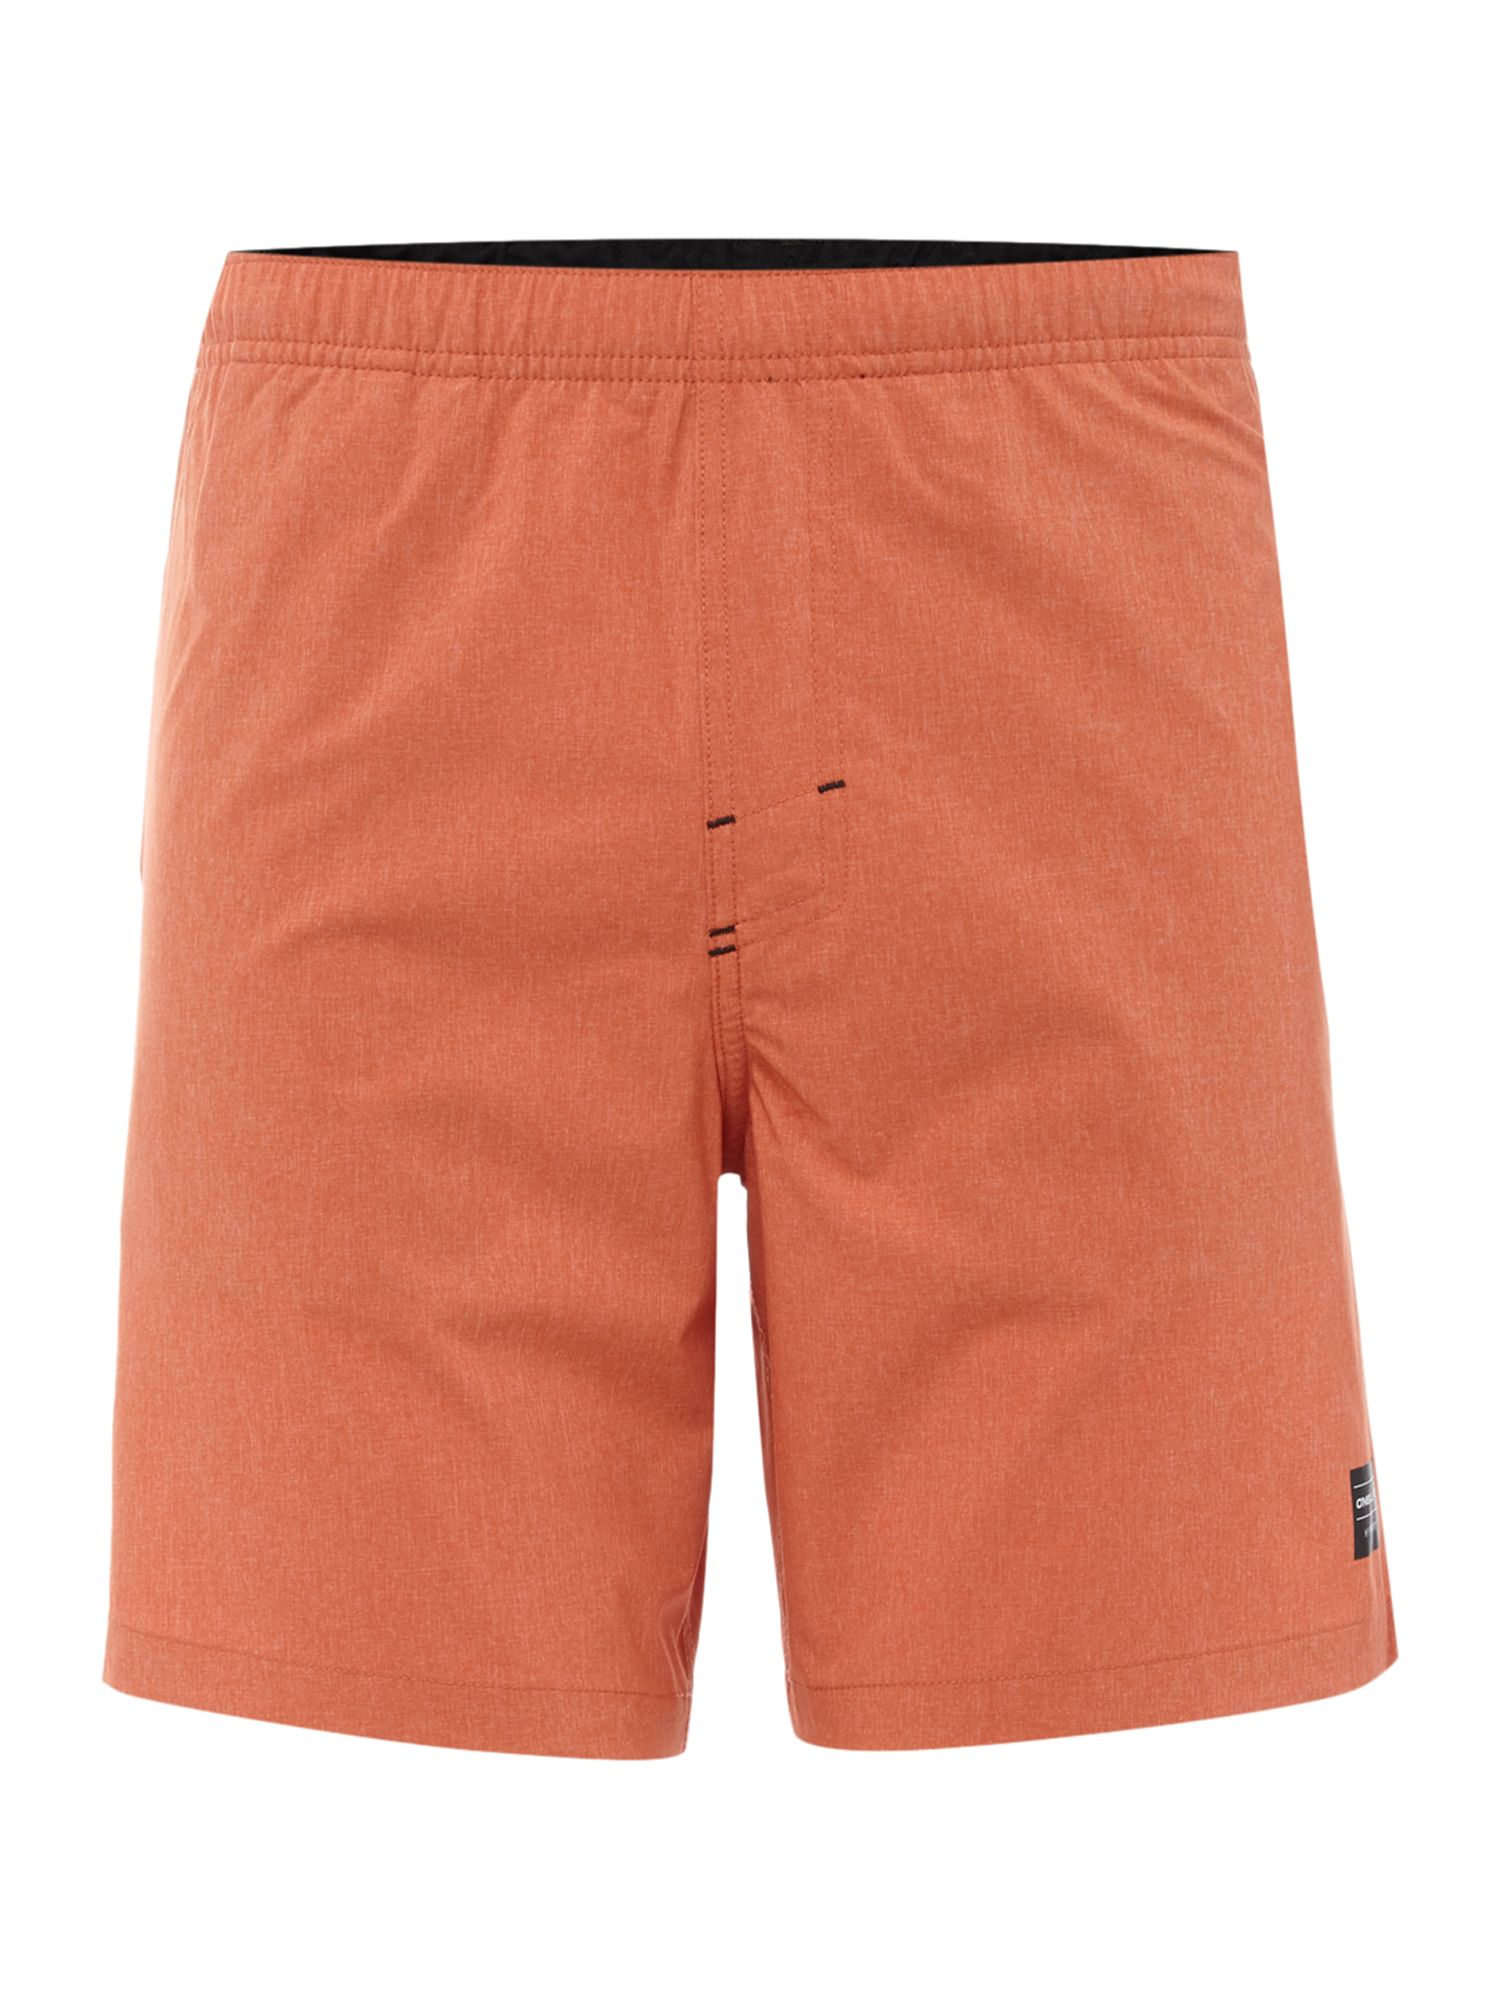 Men's O'Neill All day hybrid shorts, Red